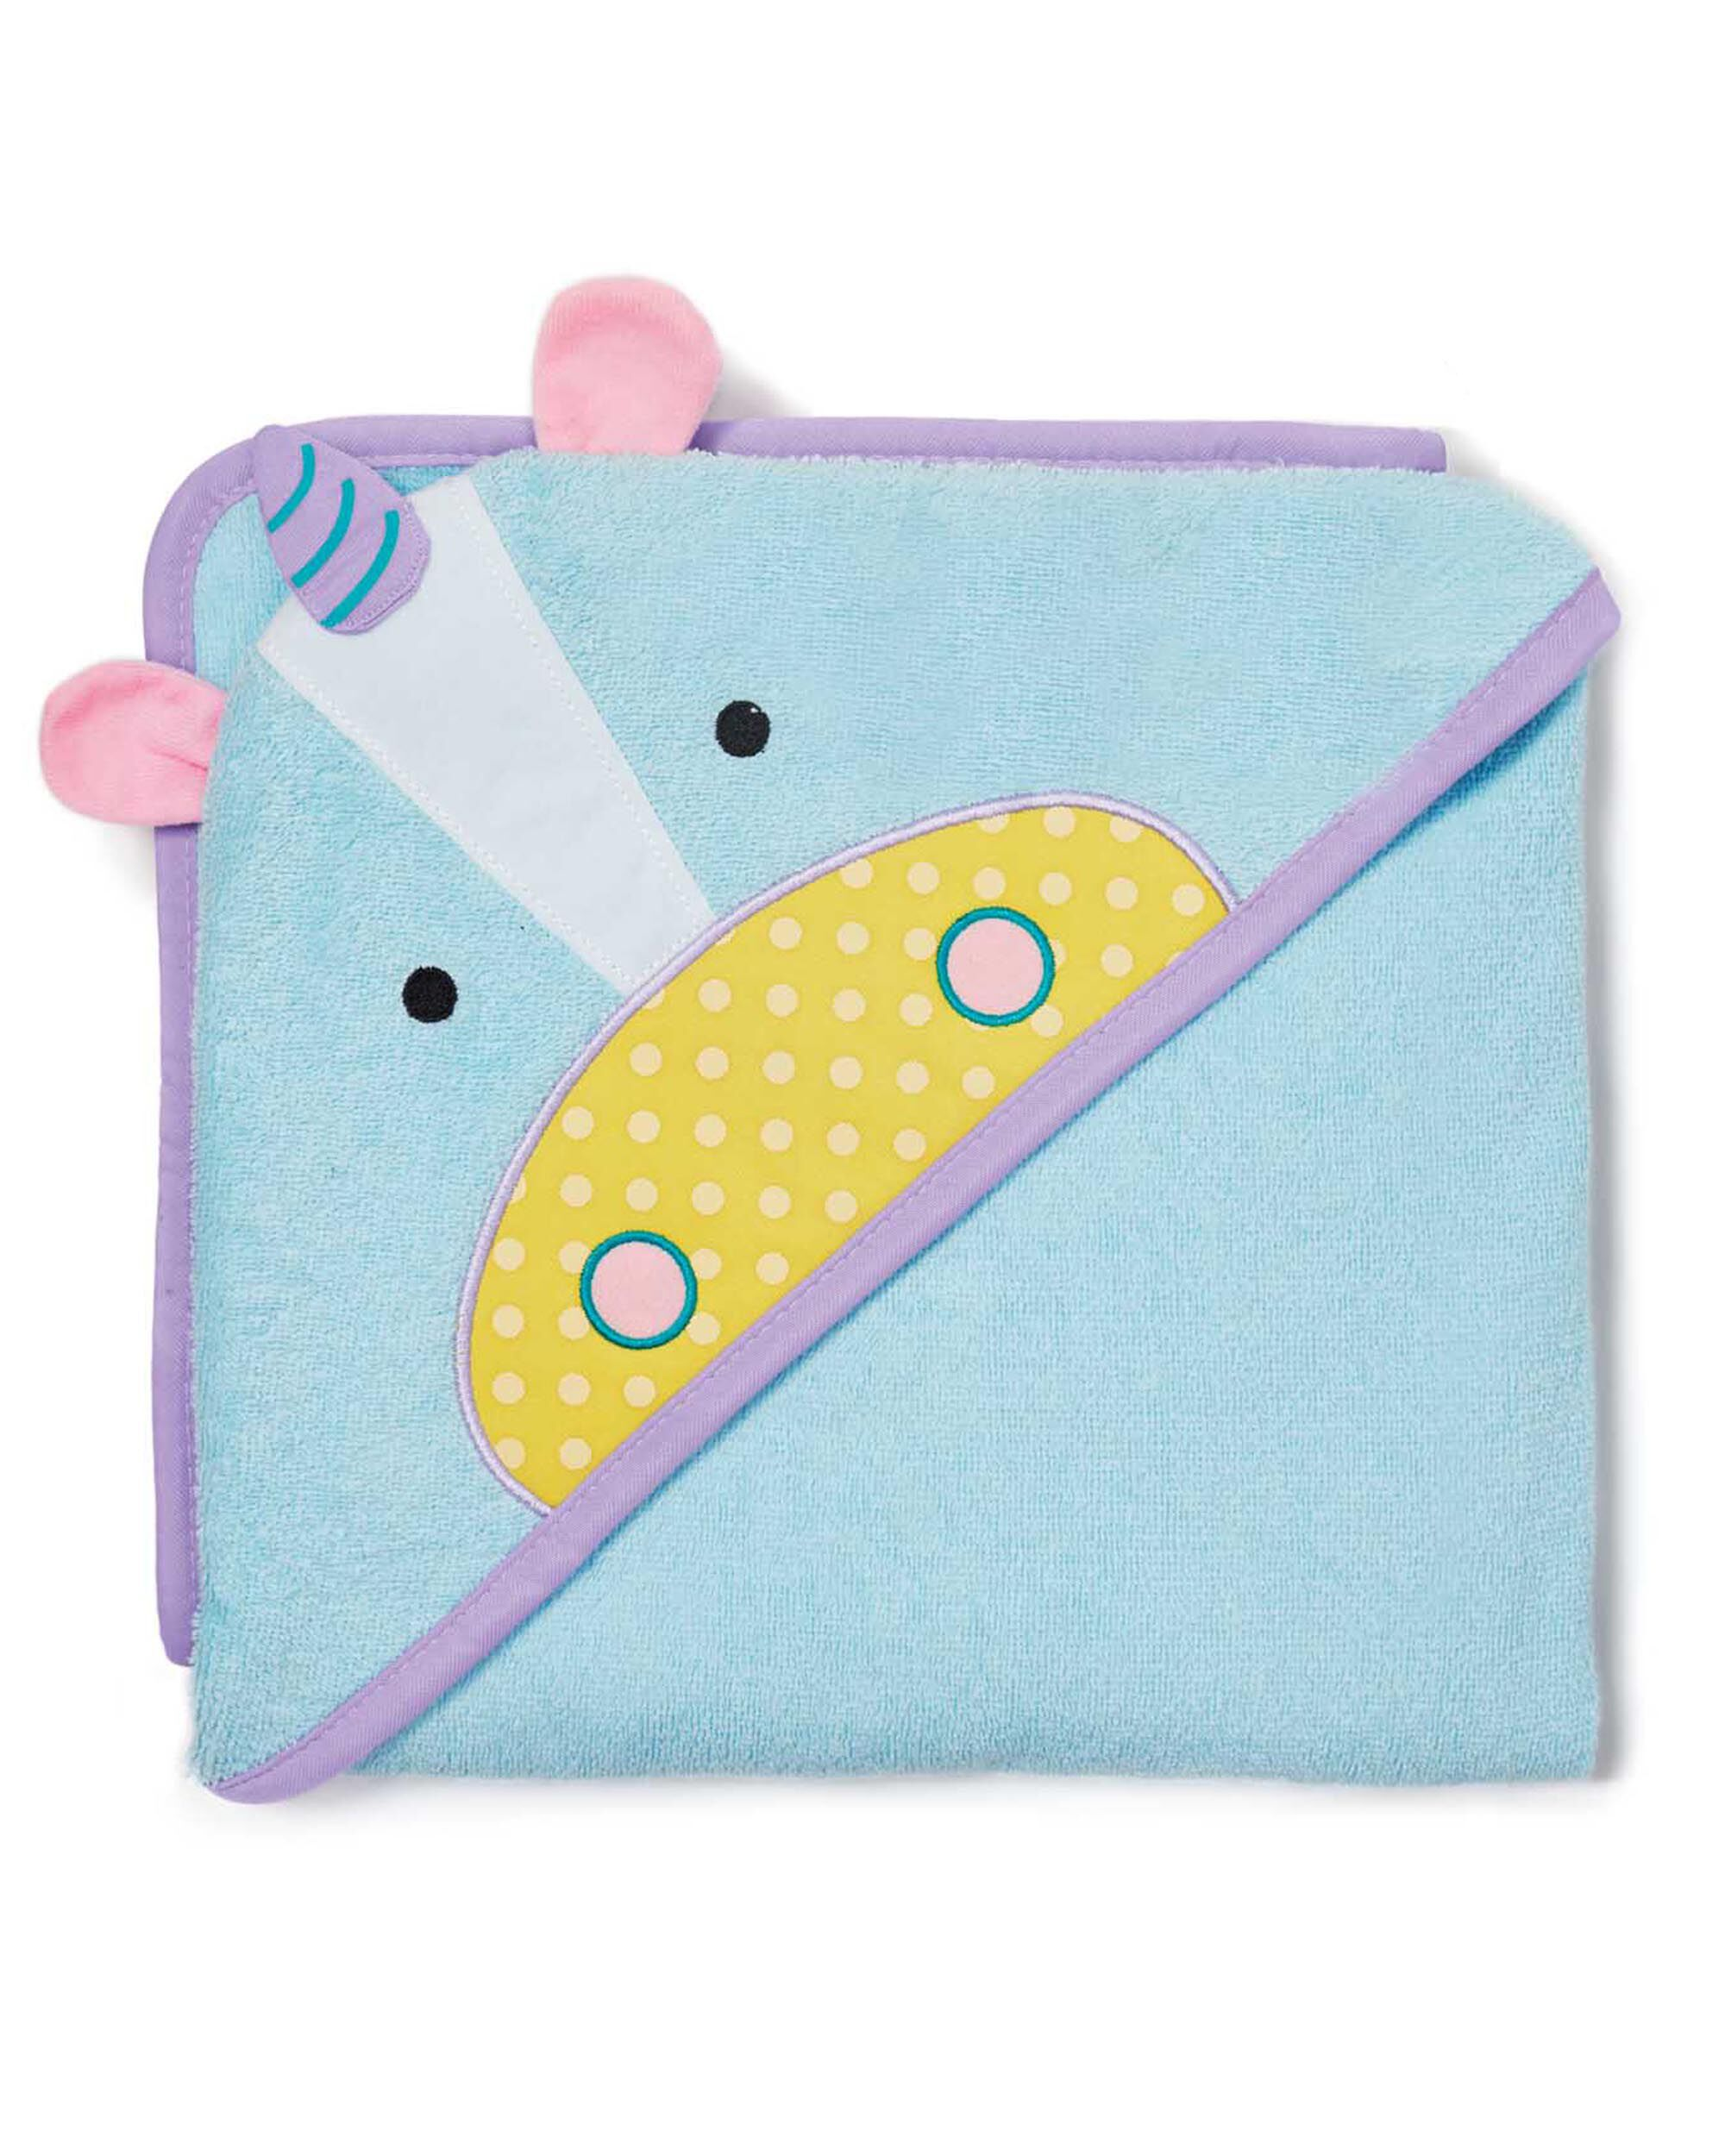 ab6fcf57c0a99 Zoo Hooded Towel · Zoo Hooded Towel ...